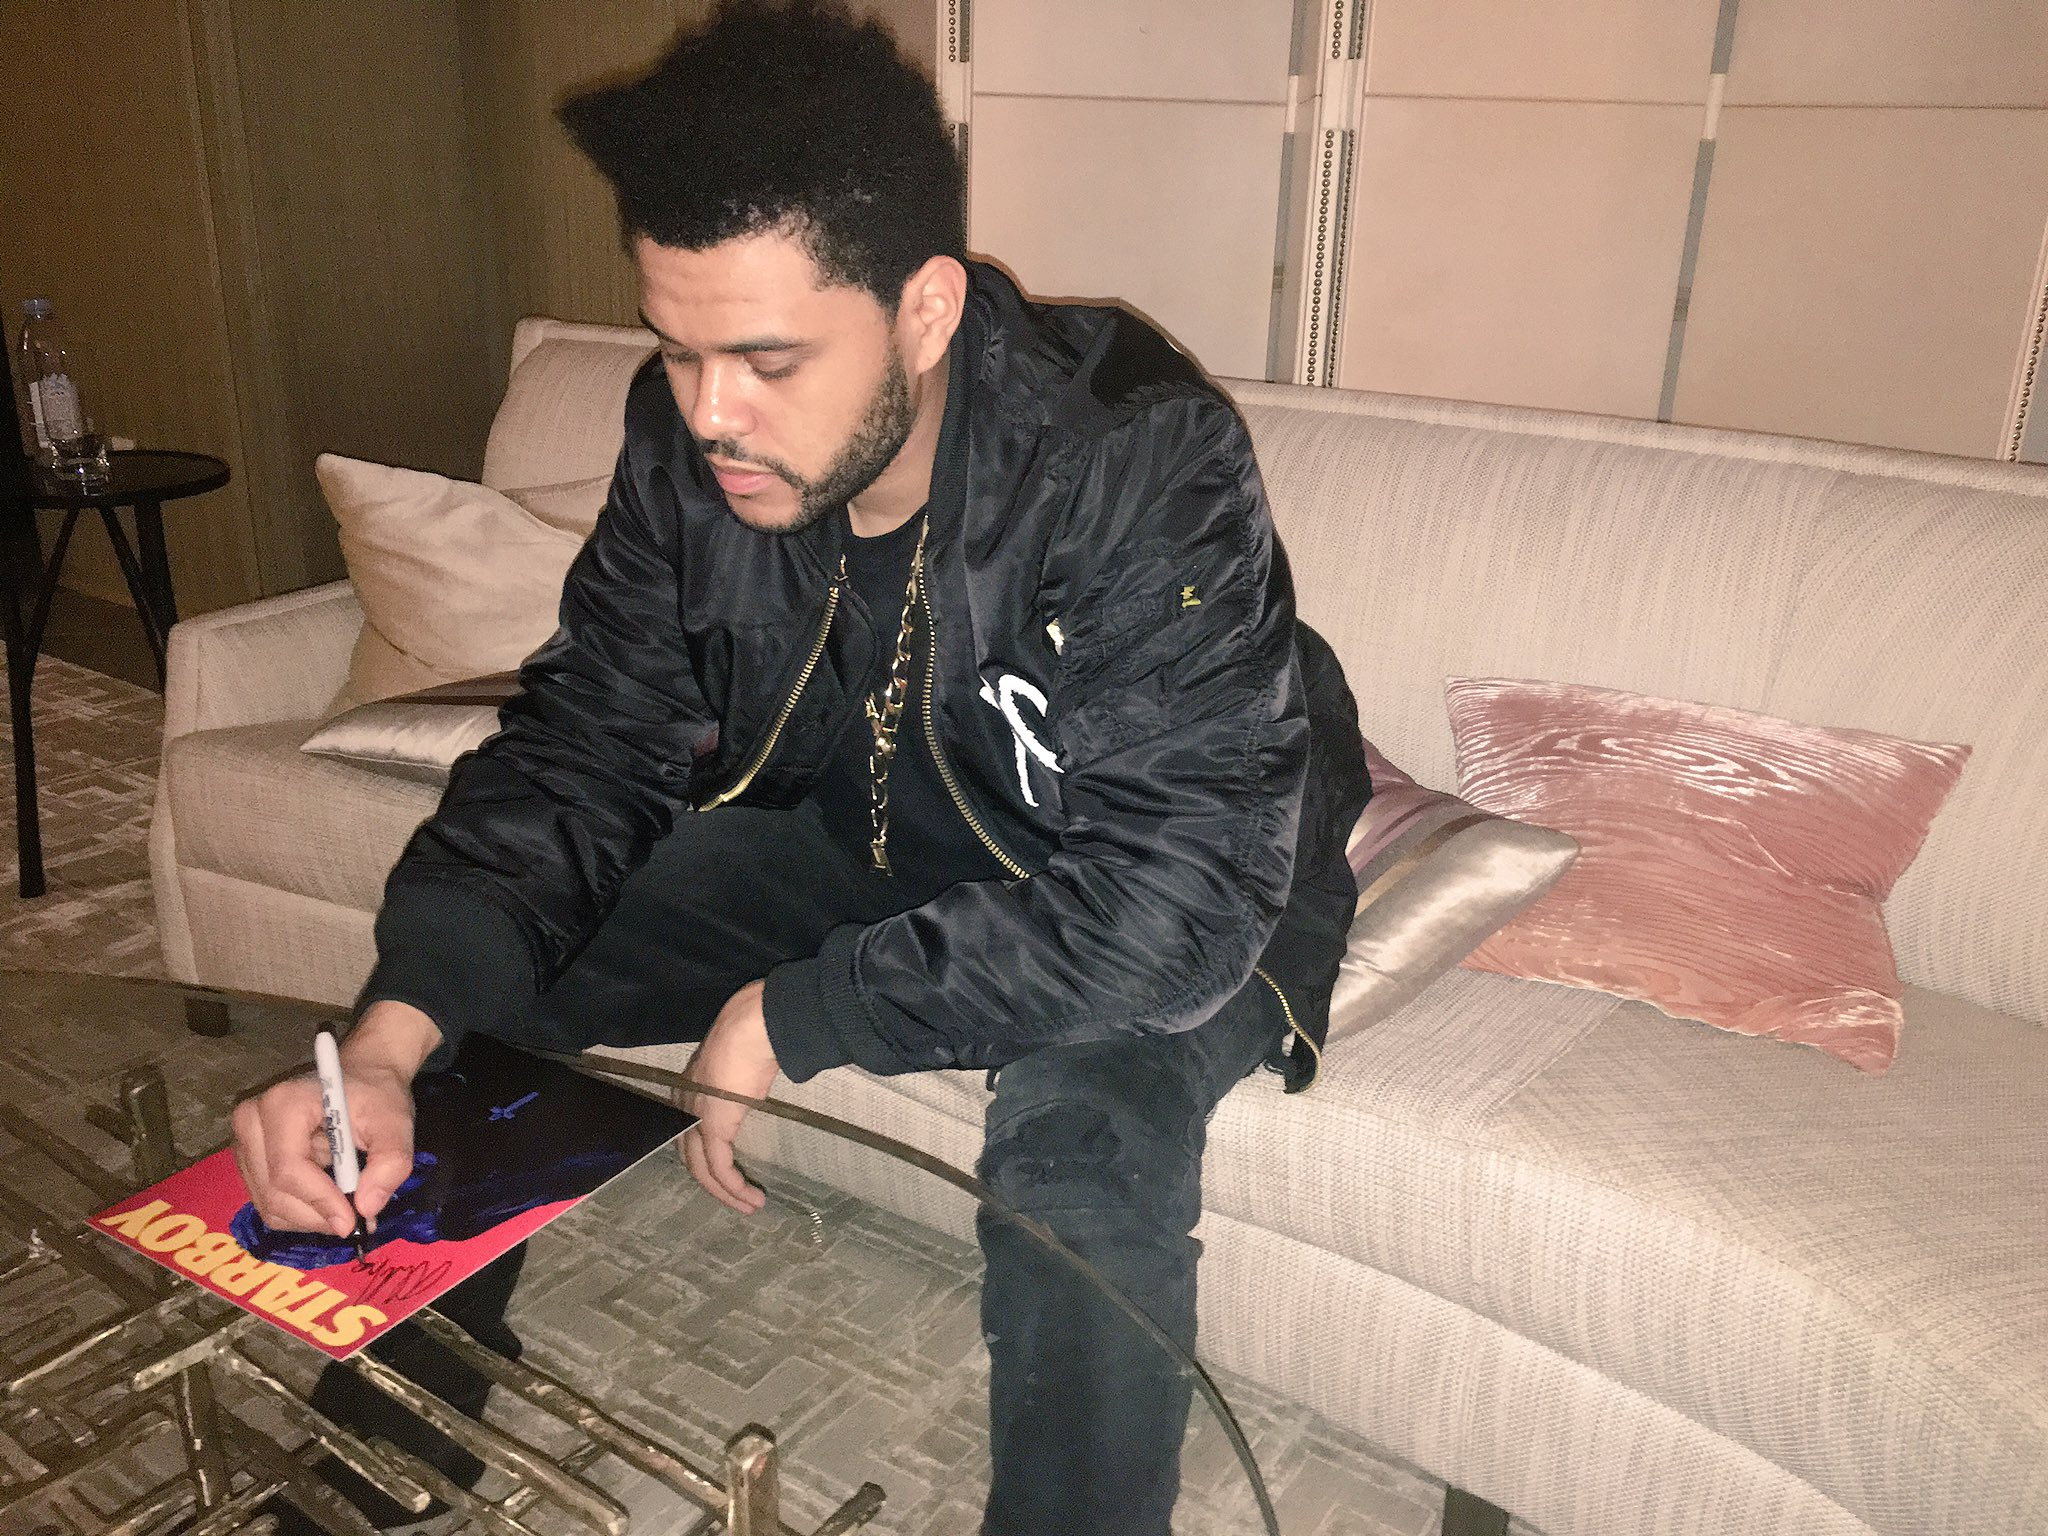 limited edition STARBOY autograph bundle : https://t.co/hqg6Hhhsi6 https://t.co/BiHaQMZGzv